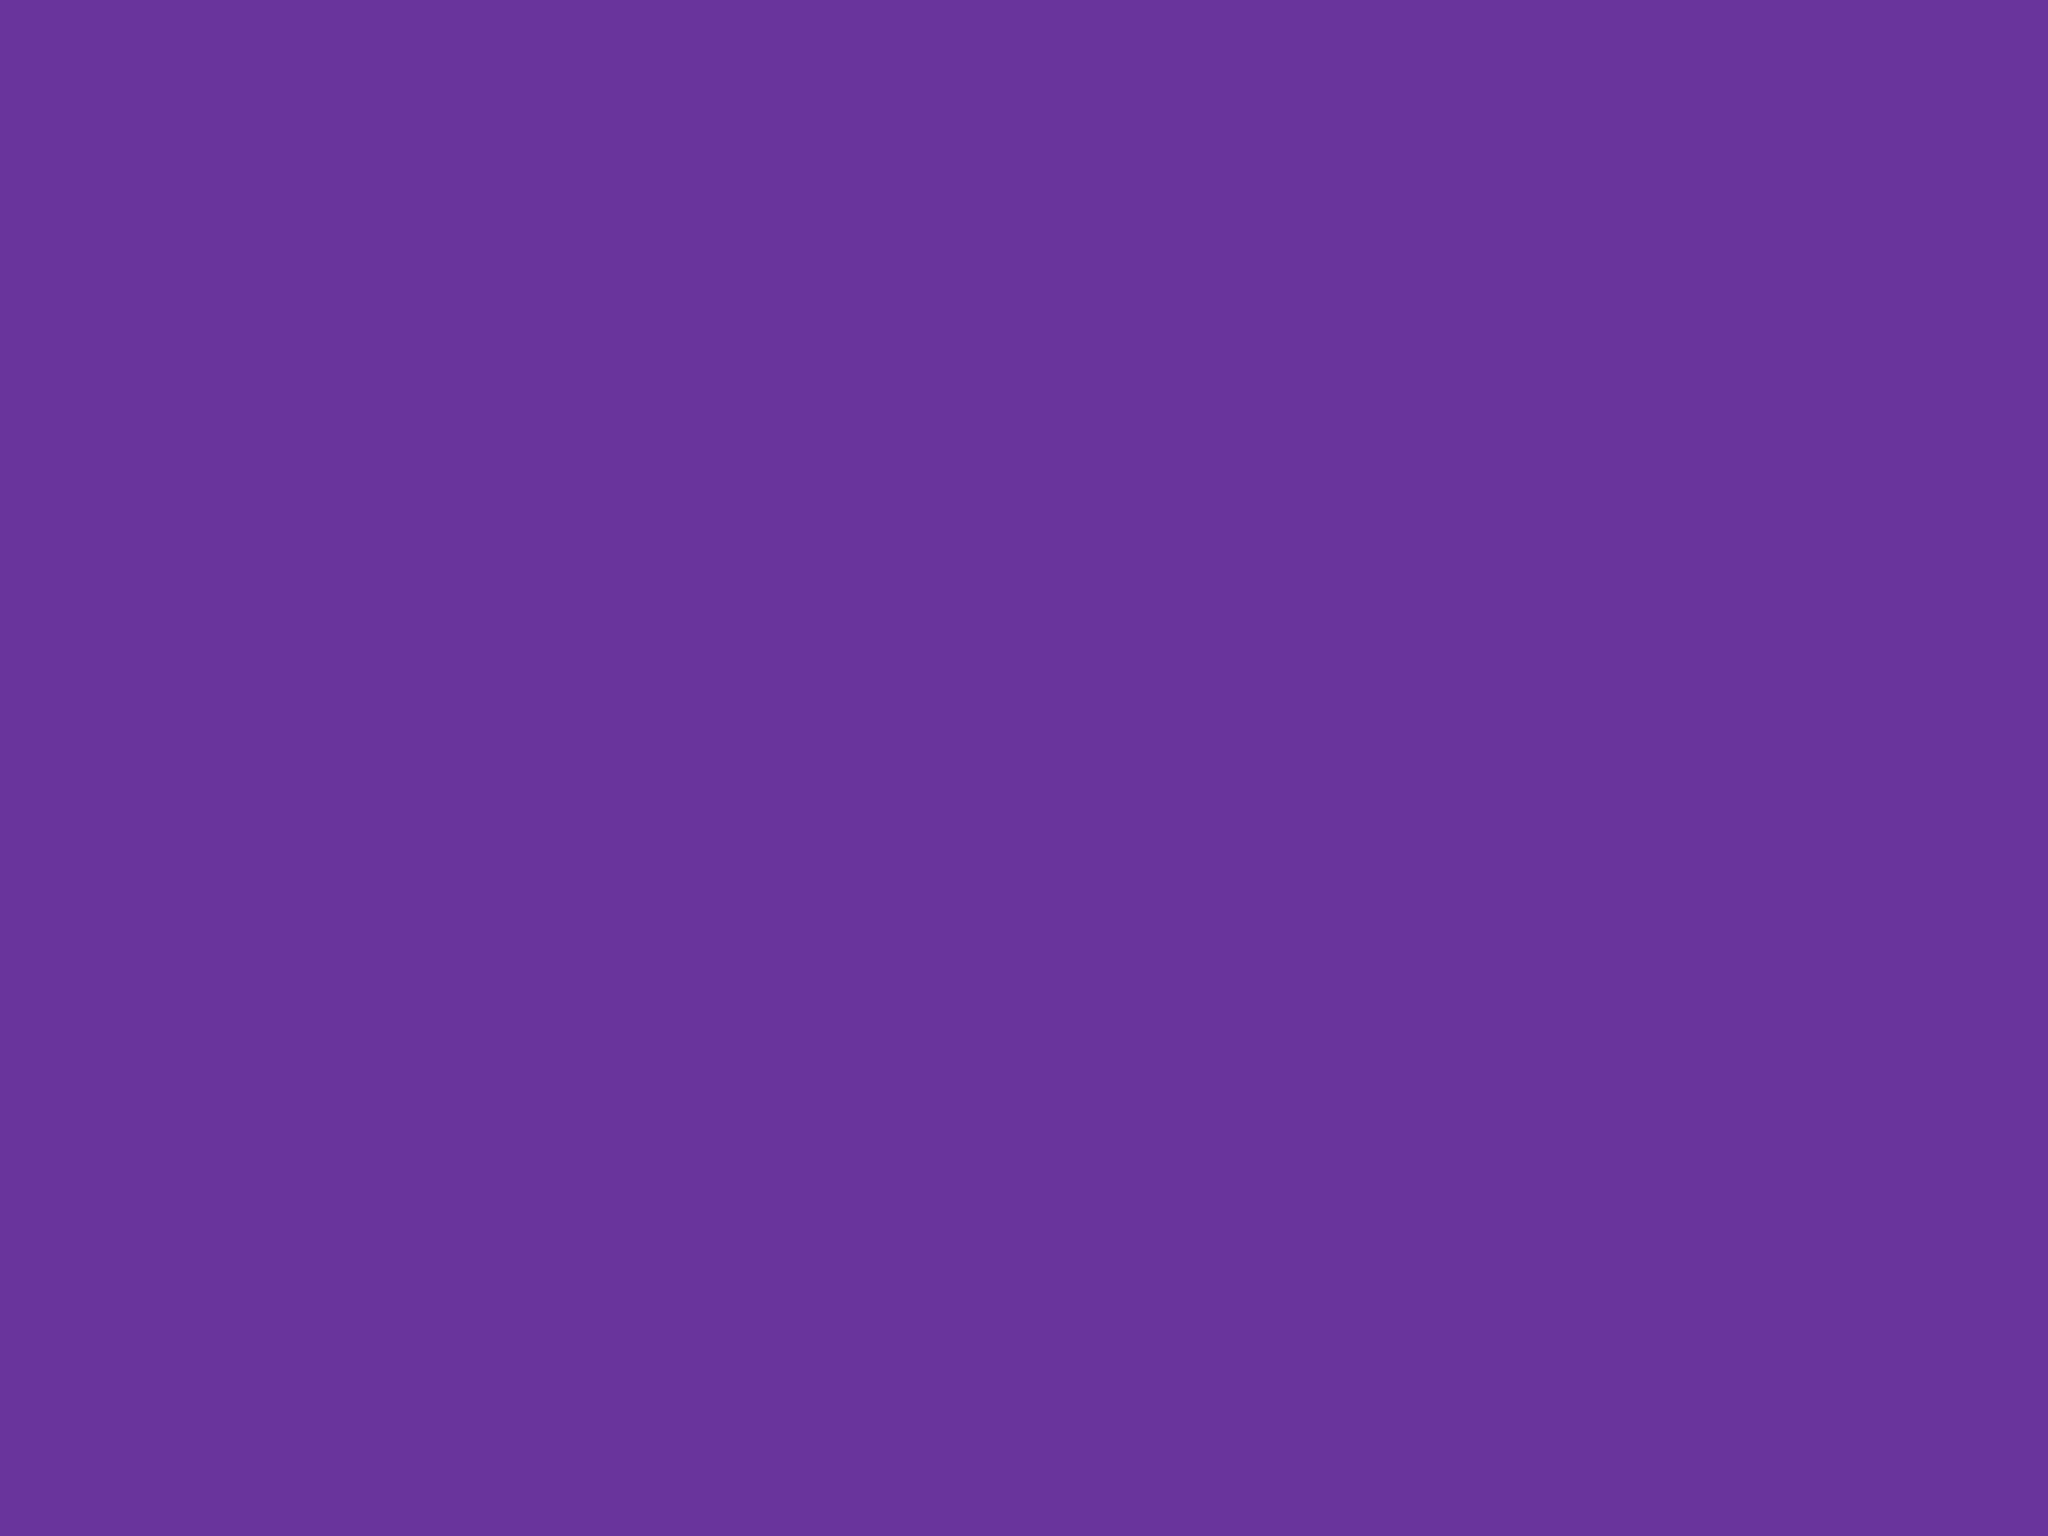 2048x1536 Purple Heart Solid Color Background